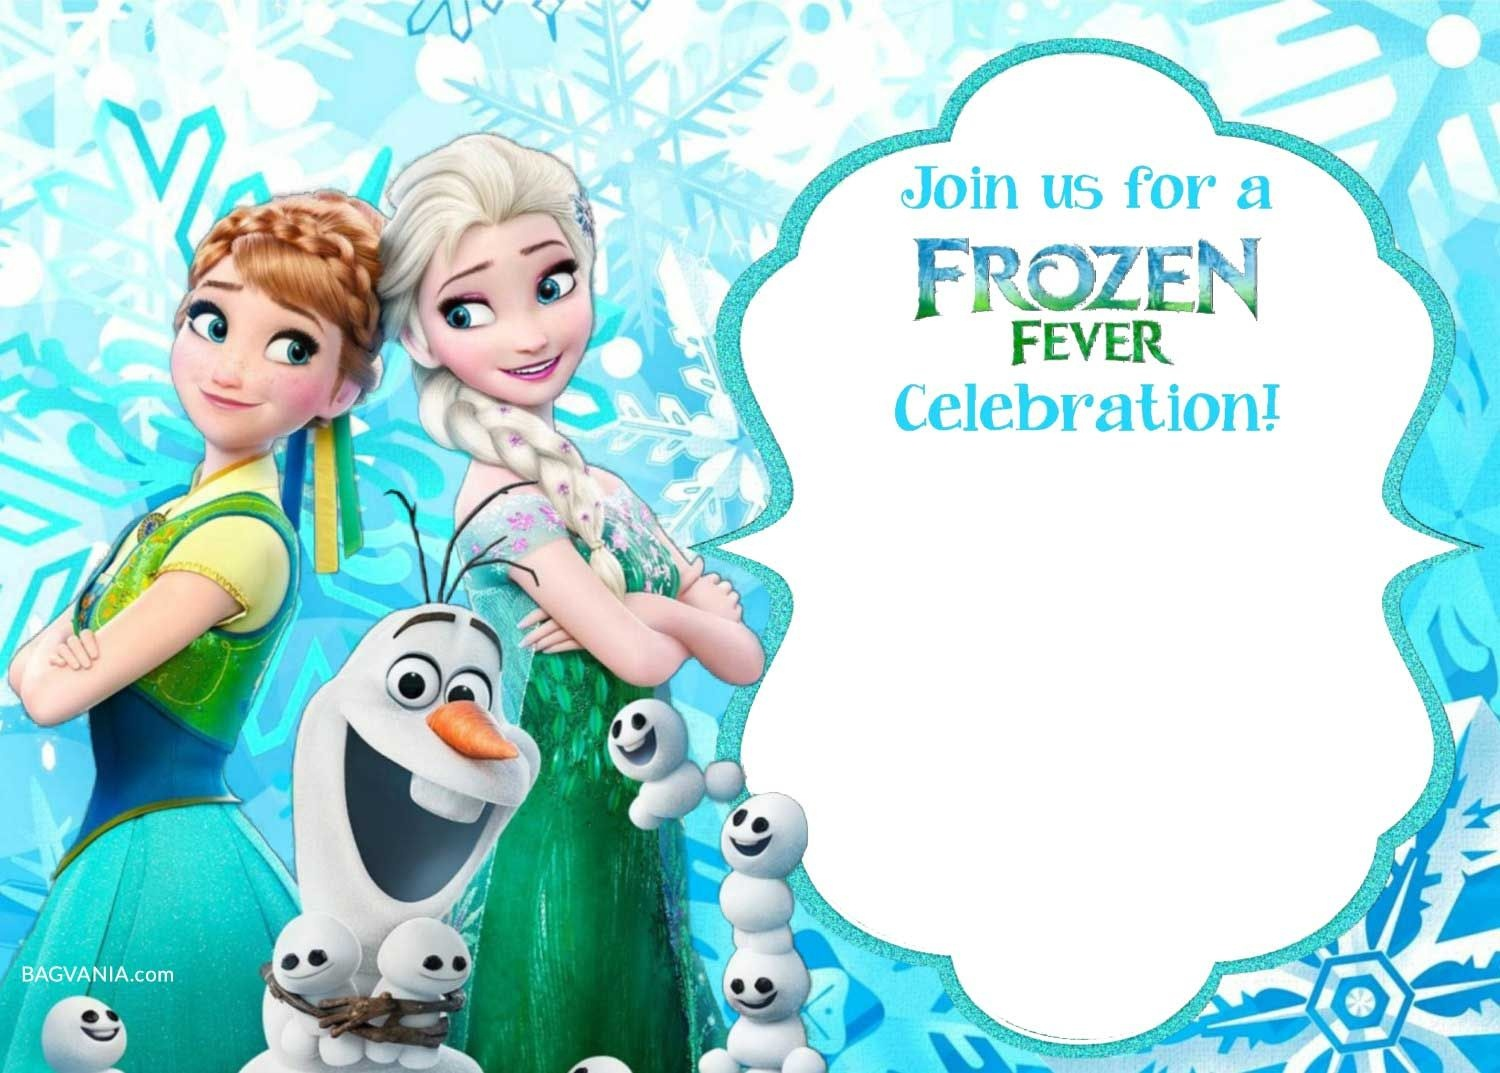 Free Printable Frozen Invitation Templates | Bagvania Free Printable - Free Printable Frozen Birthday Cards